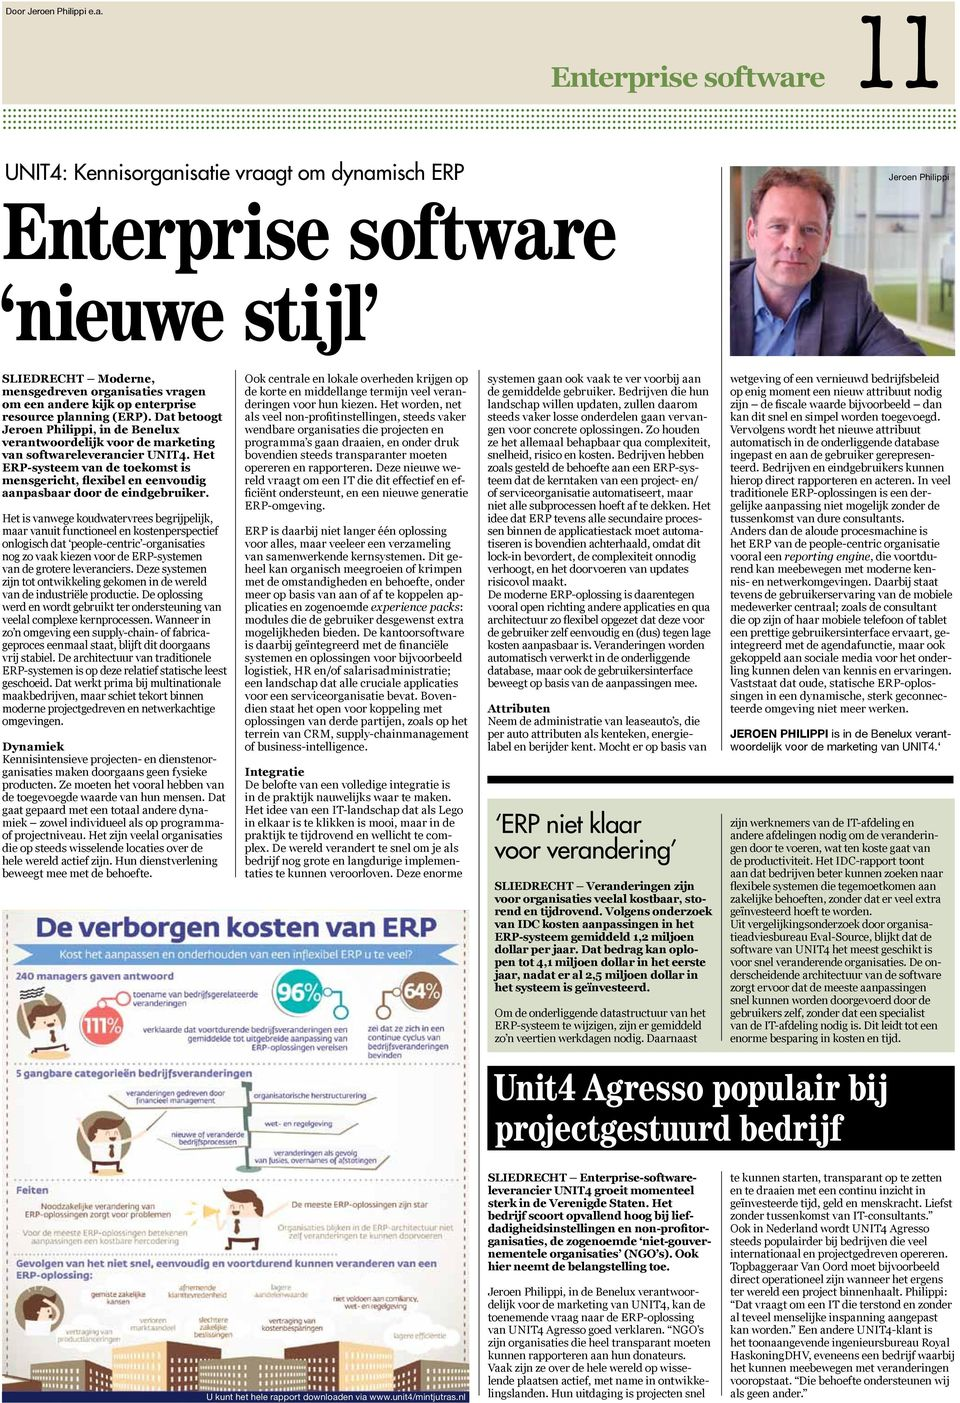 enterprise resource planning (ERP). Dat betoogt Jeroen Philippi, in de Benelux verantwoordelijk voor de marketing van softwareleverancier UNIT4.